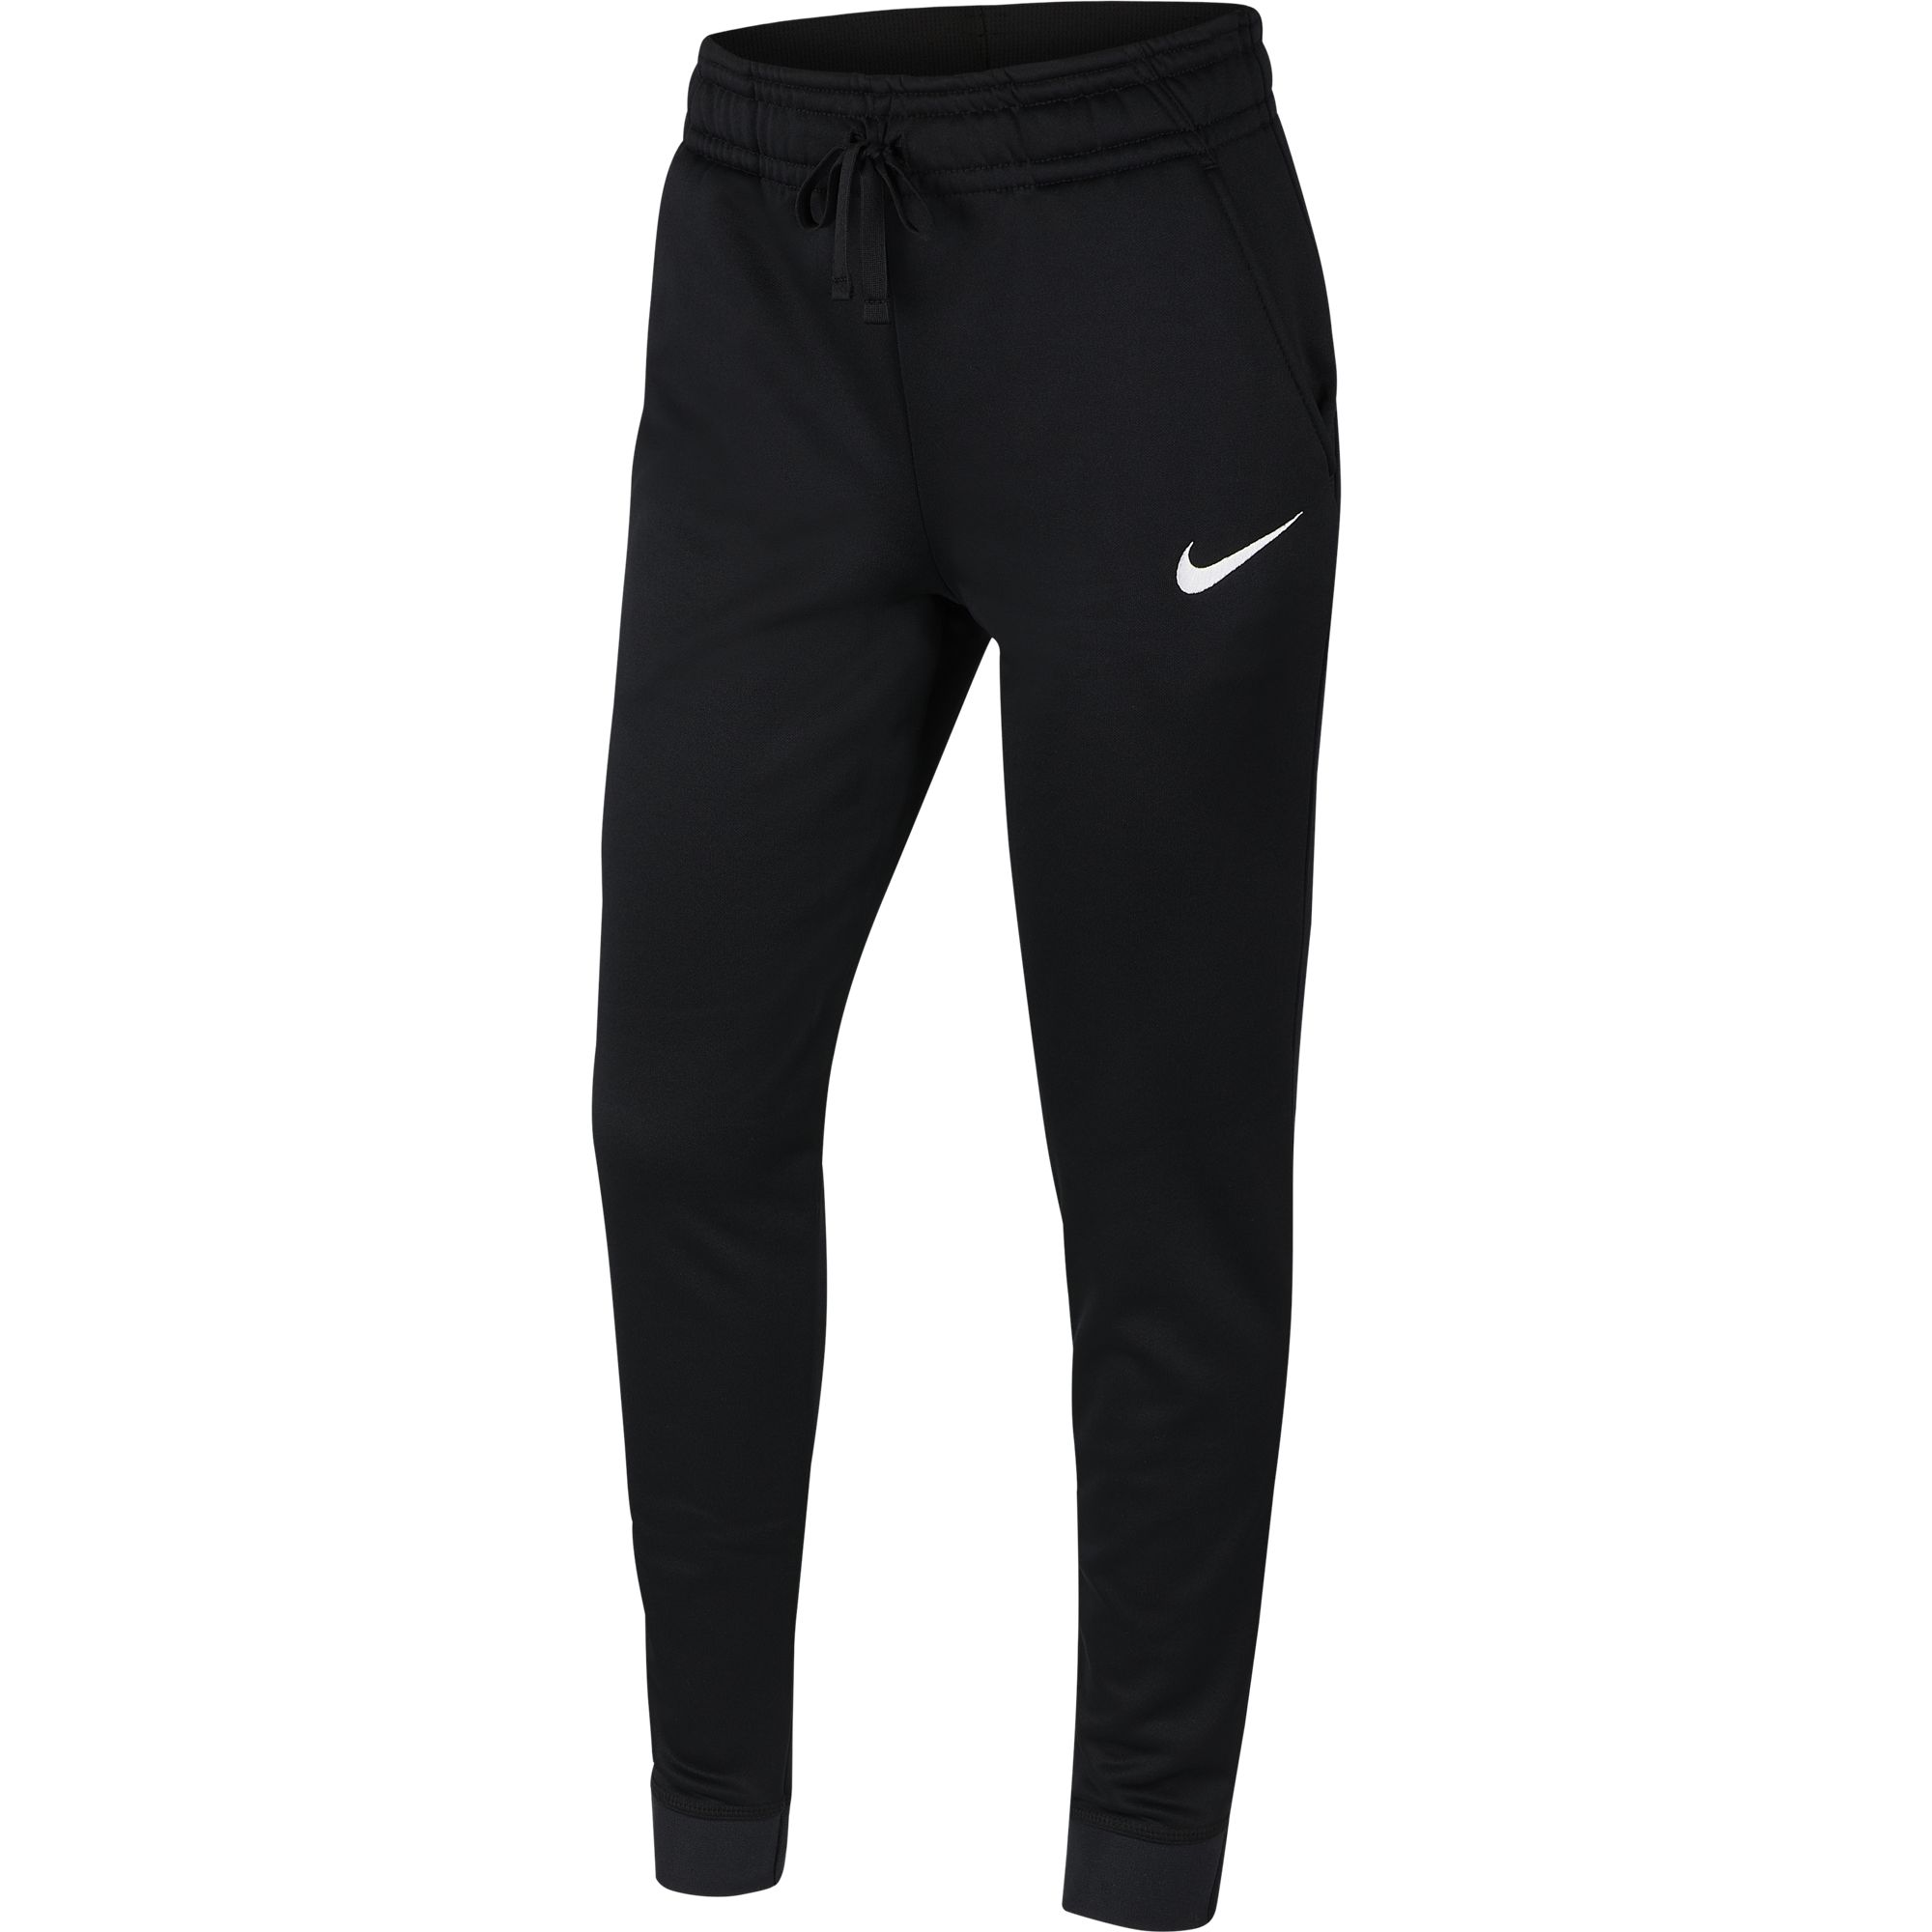 Girl's Therma Cuff Pant, Black, swatch